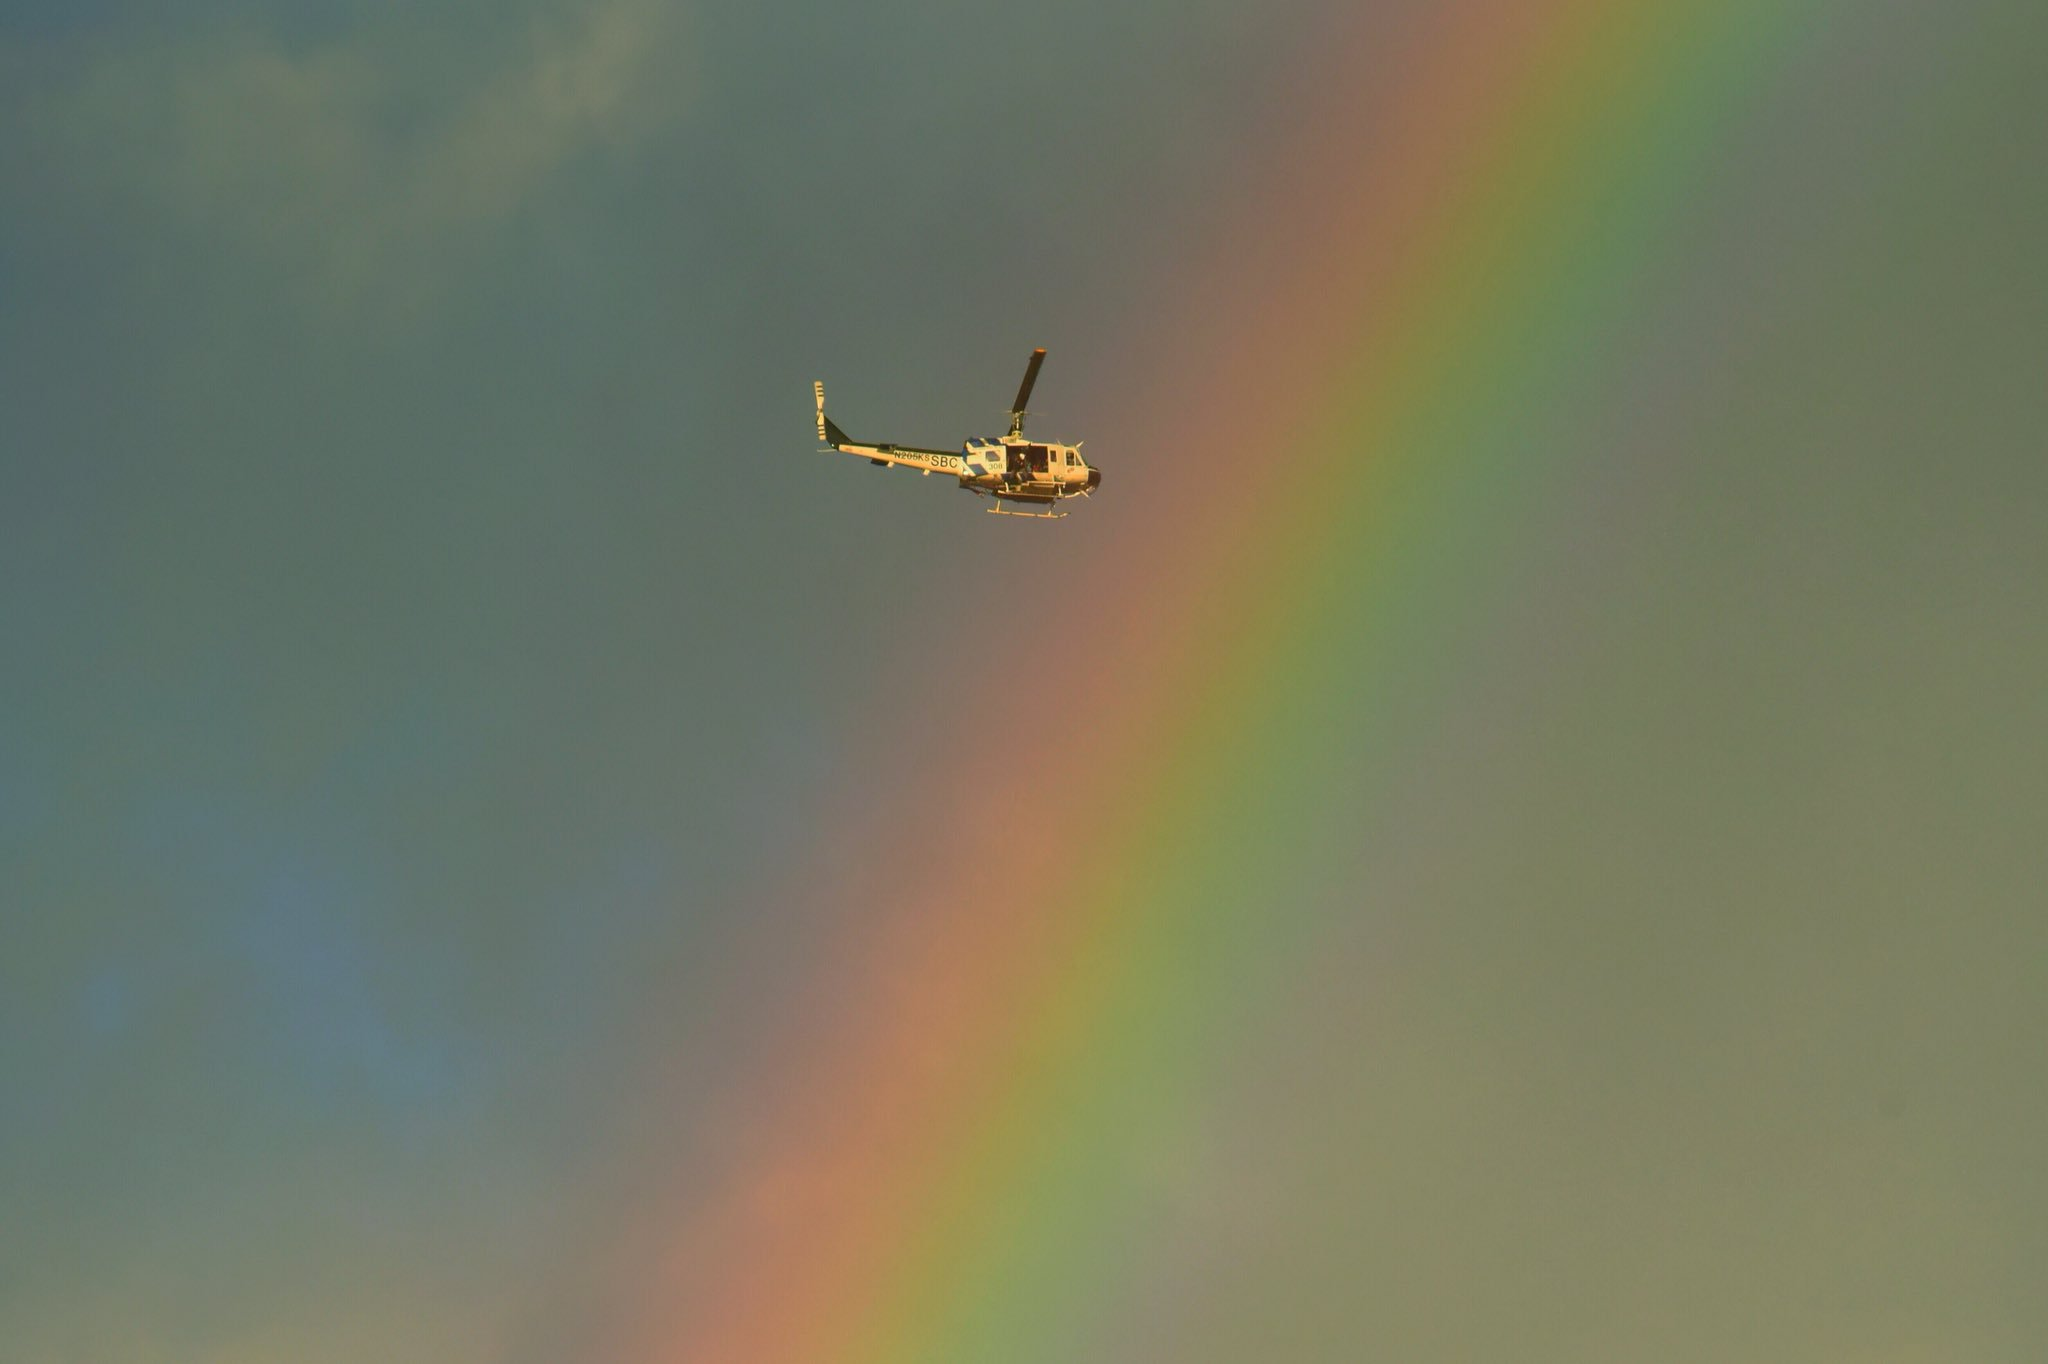 { }Santa Barbara County Air Support Unit's Fire Copter 308 flies through a rainbow Tuesday afternoon while on a rescue mission in Montecito following deadly mudflow after heavy rains trapped dozens of people.{ }(Photo & Caption: Mike Eliason, Santa Barbara County Fire Dept.)